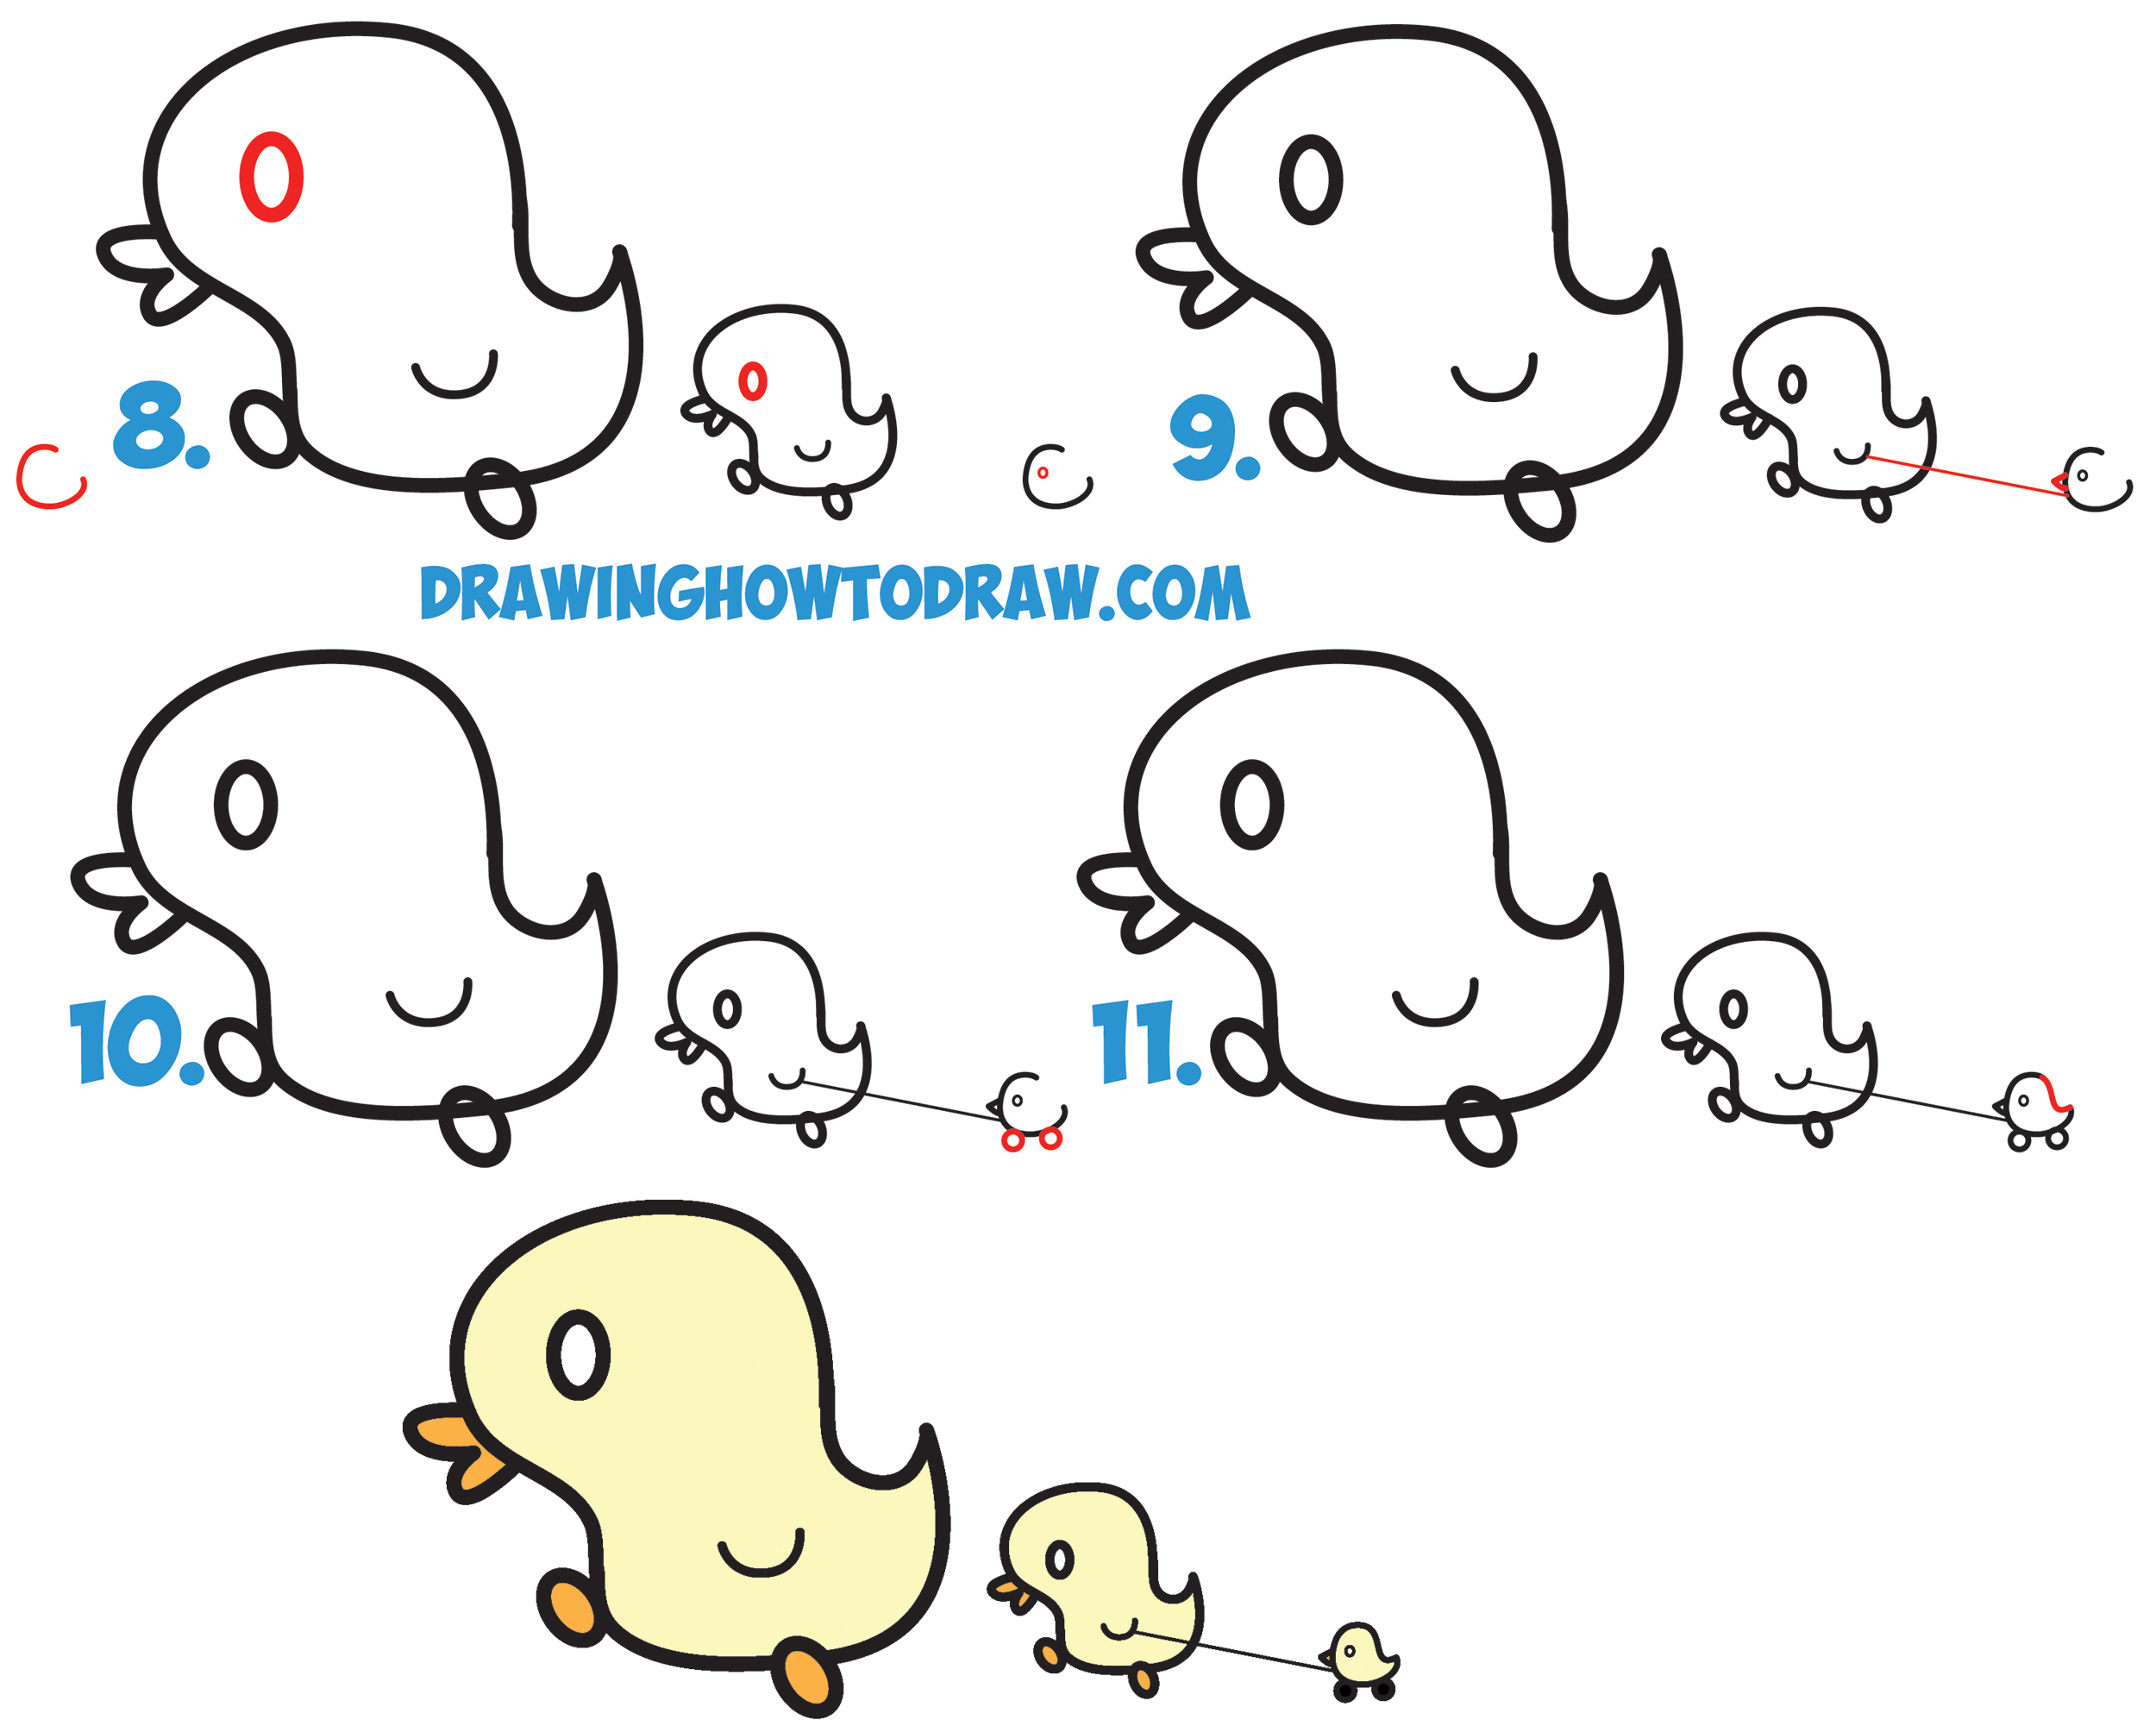 Learn How to Draw Cute Kawaii Baby Ducks / Cartoon Ducklings in Simple Steps Drawing Lesson for Kids